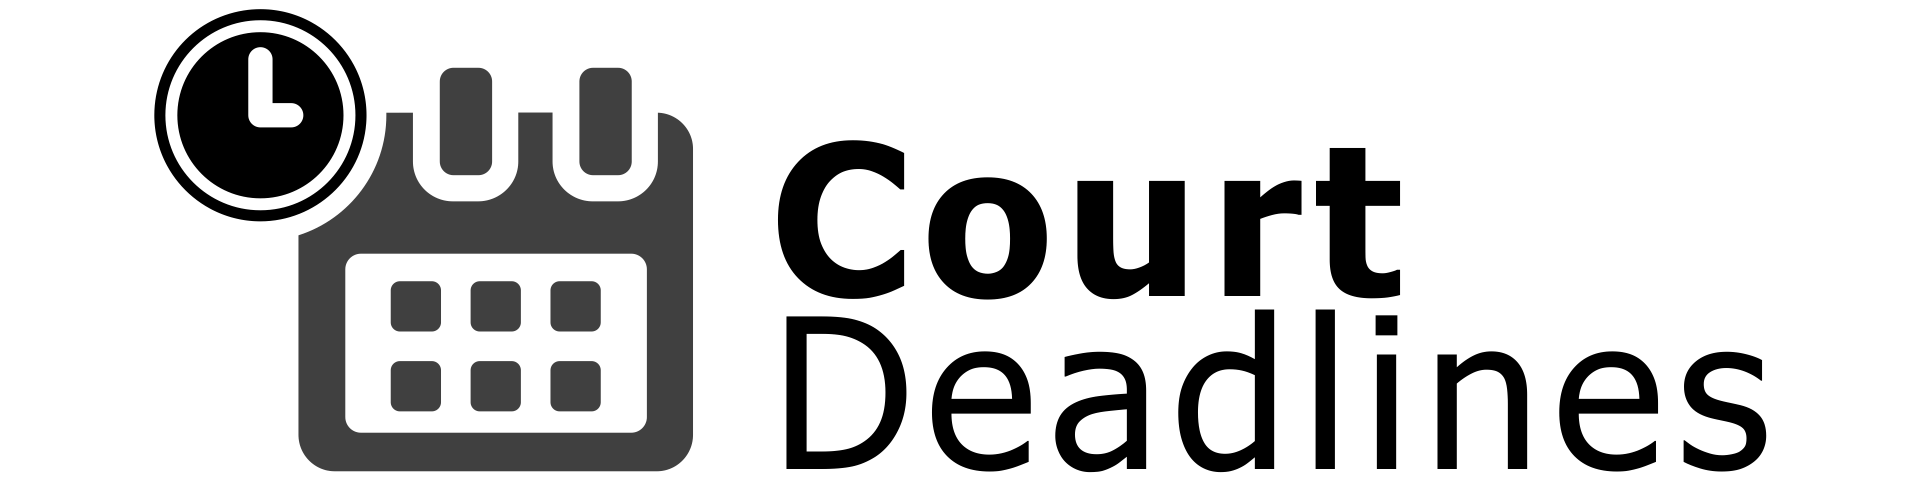 Court Deadlines | Deadline Calculators and Legal Resources